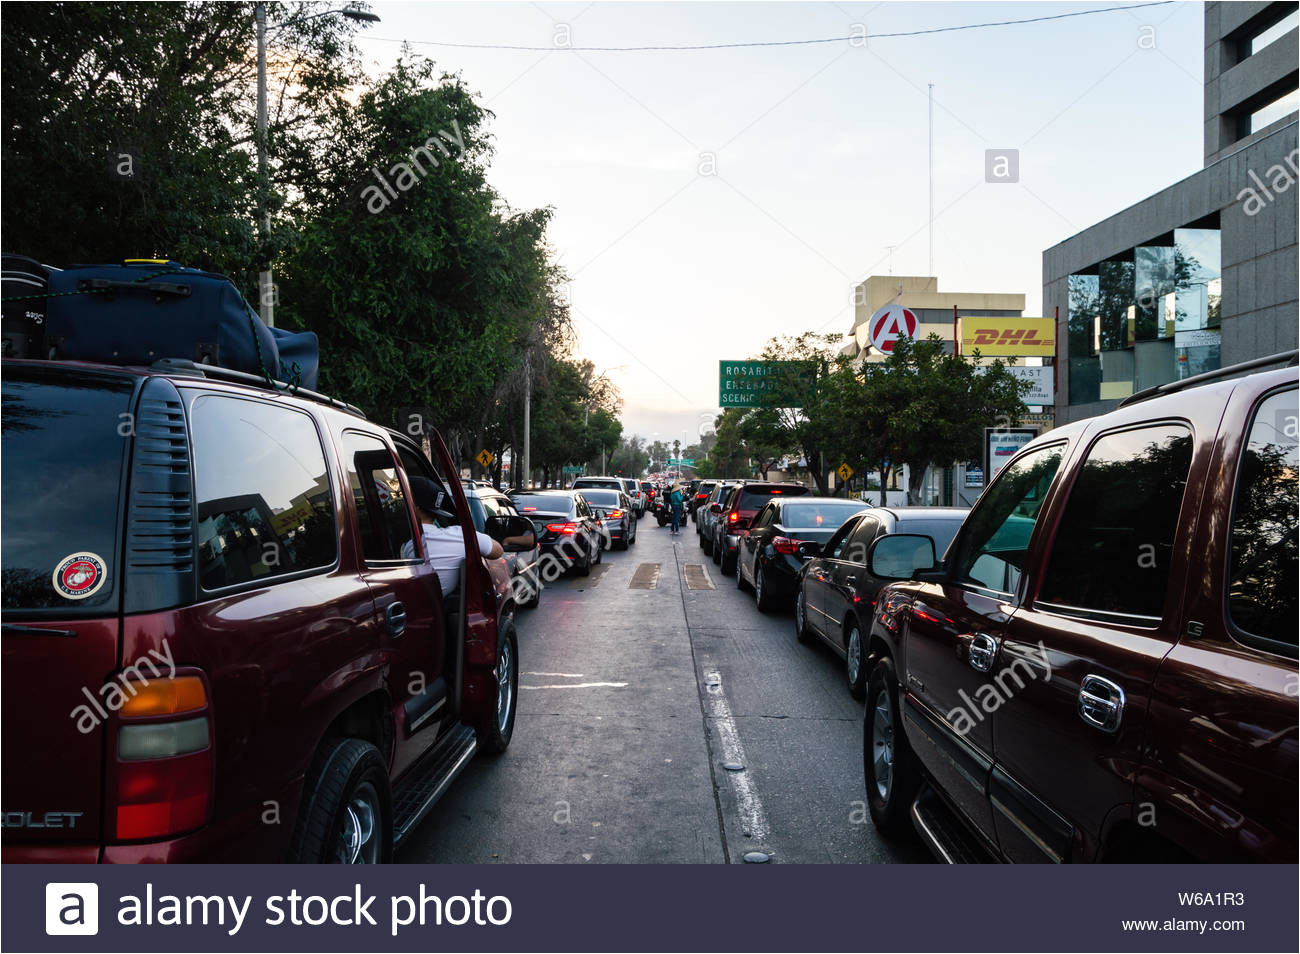 tijuana baja california mexico july 28 2019 the border crossing line stretches into zona rio congesting traffic in central tijuana and drawing s w6a1r3 jpg